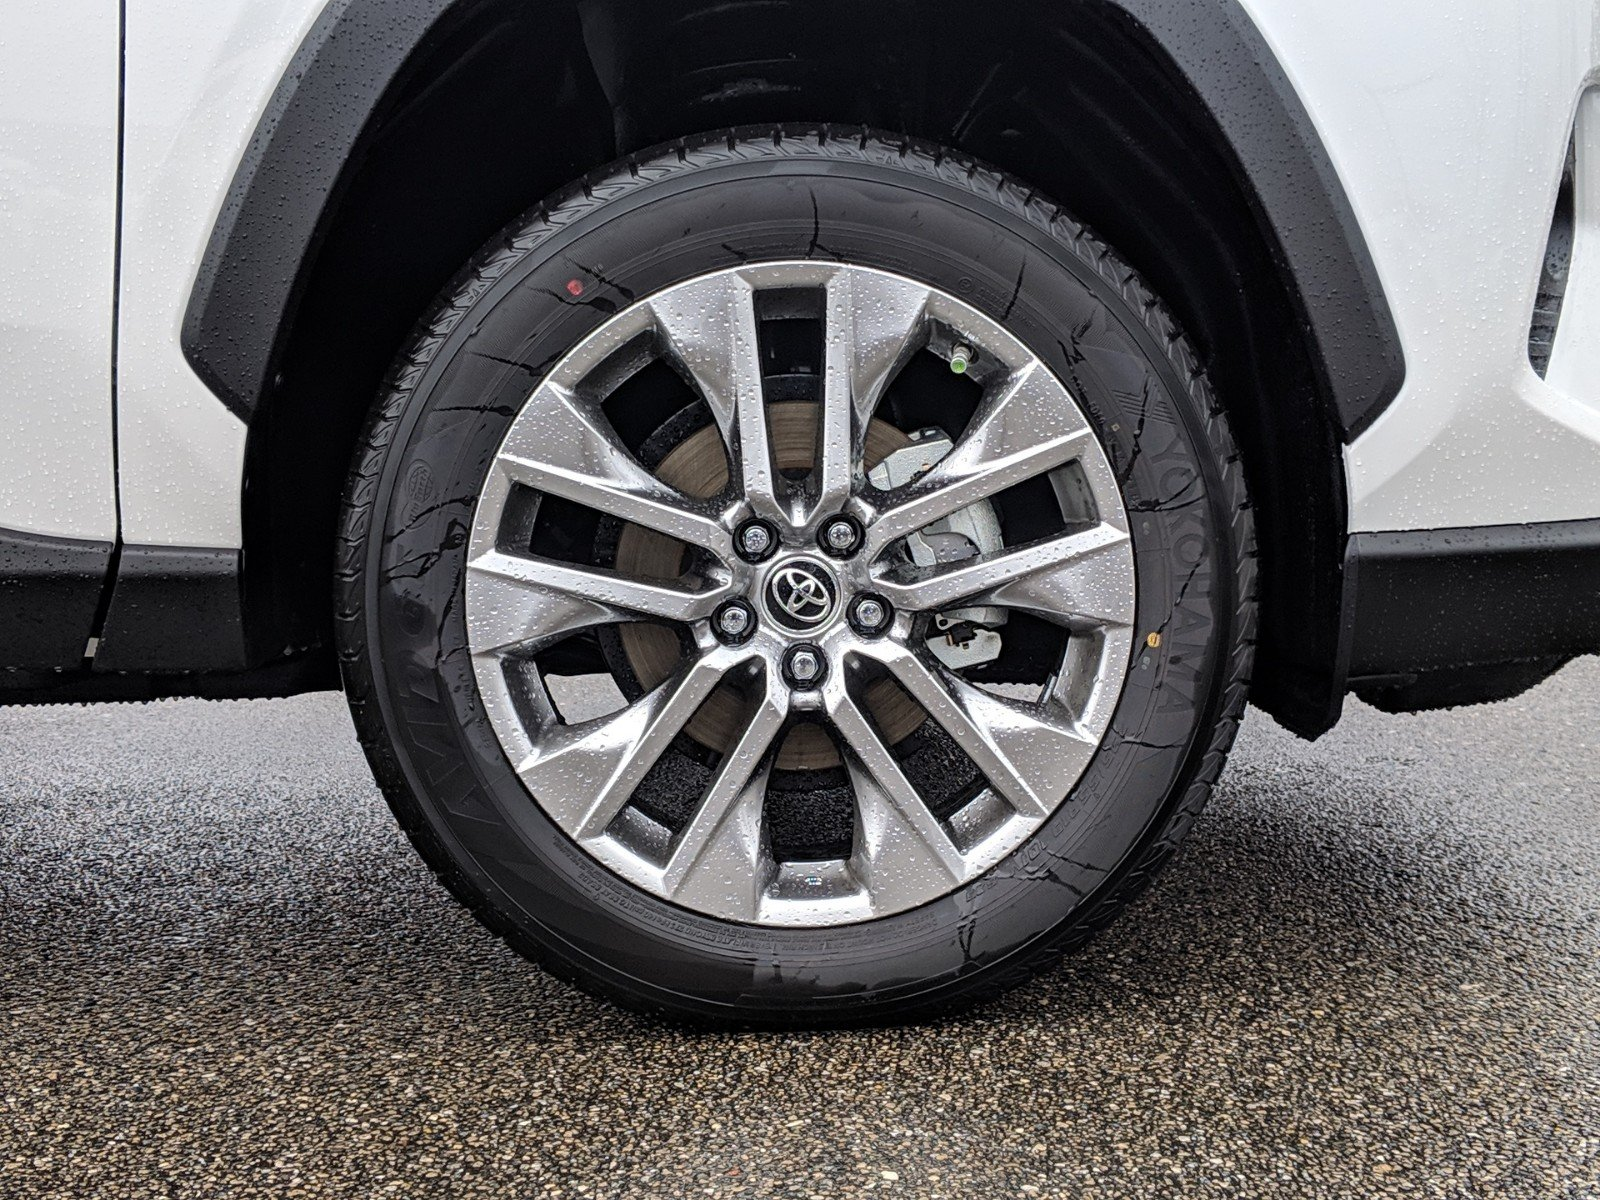 New 2019 Toyota Rav4 Xle Premium Sport Utility In Tallahassee Rear Suspension Parts D004939 Legacy